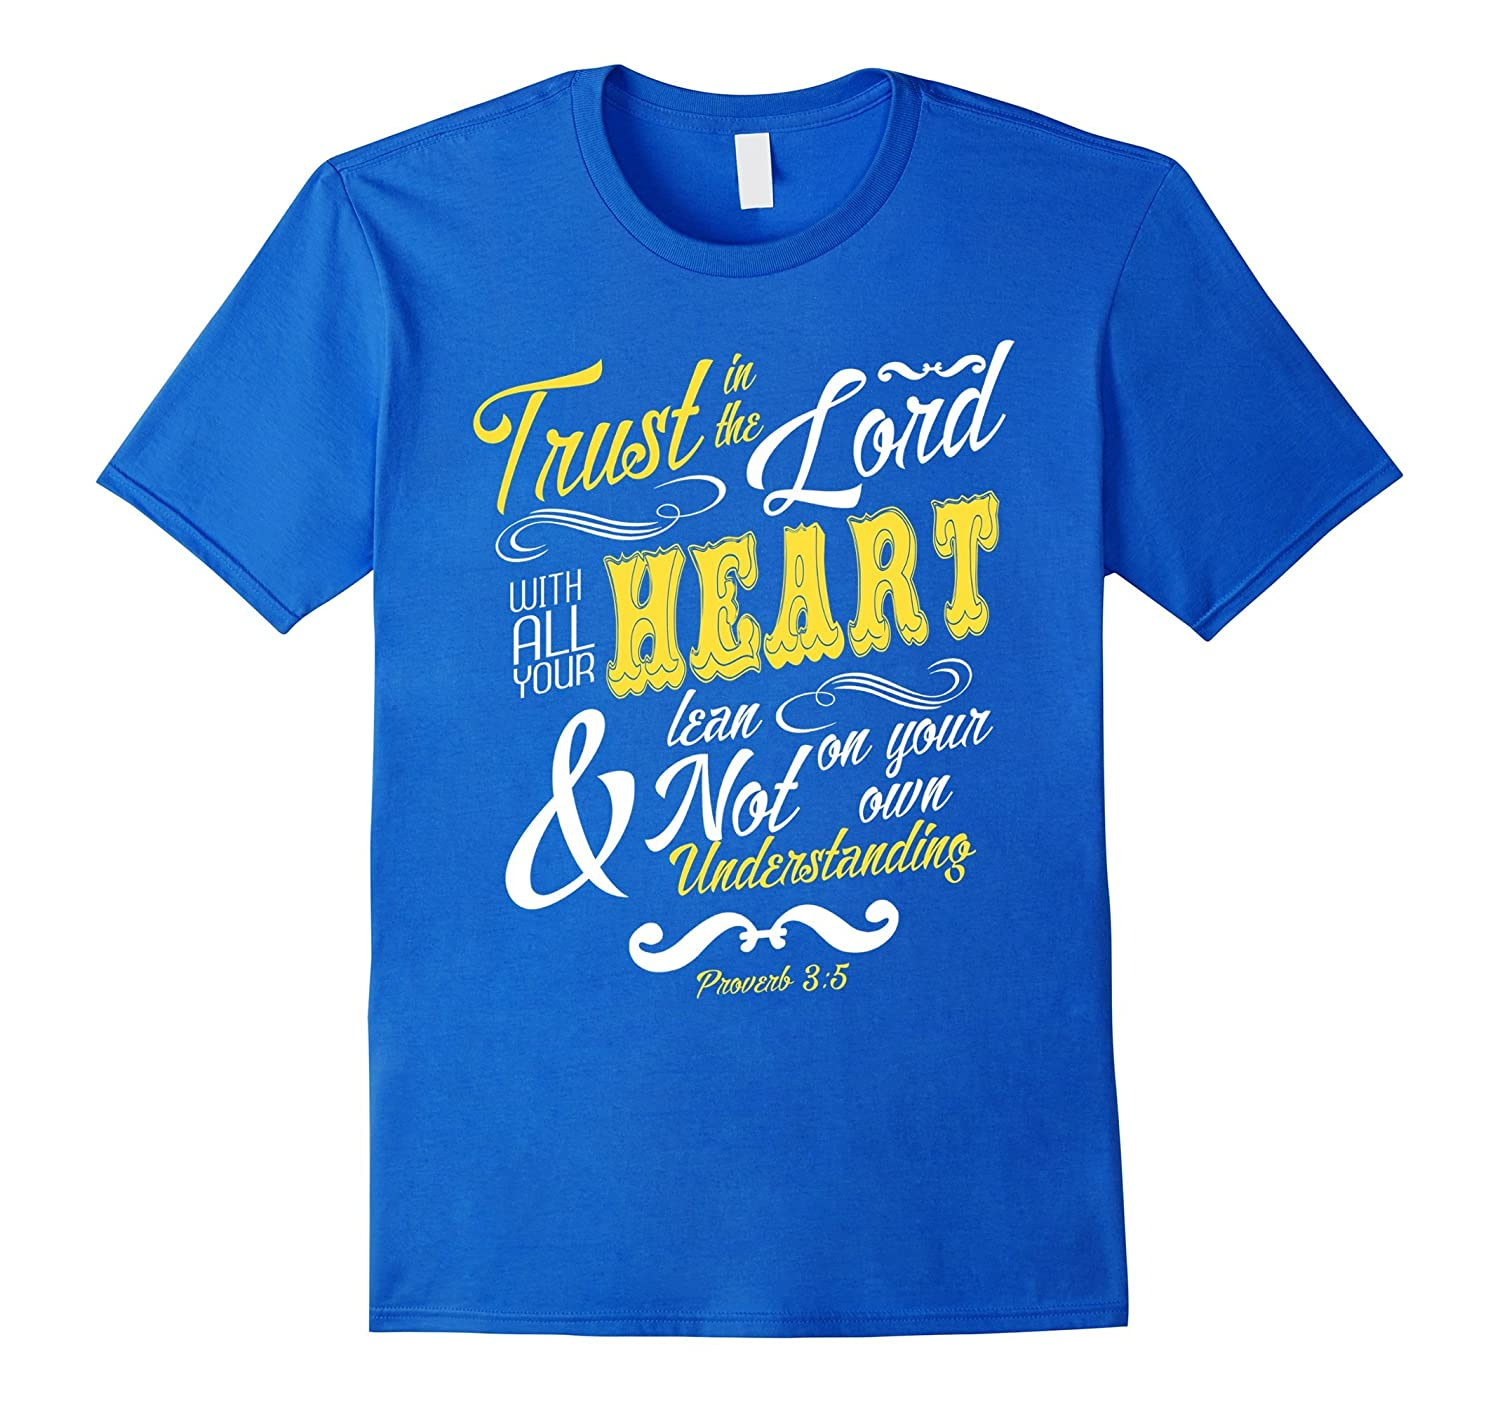 Trust in the lord with all your heart bible verse t shirt for Bible t shirt quotes